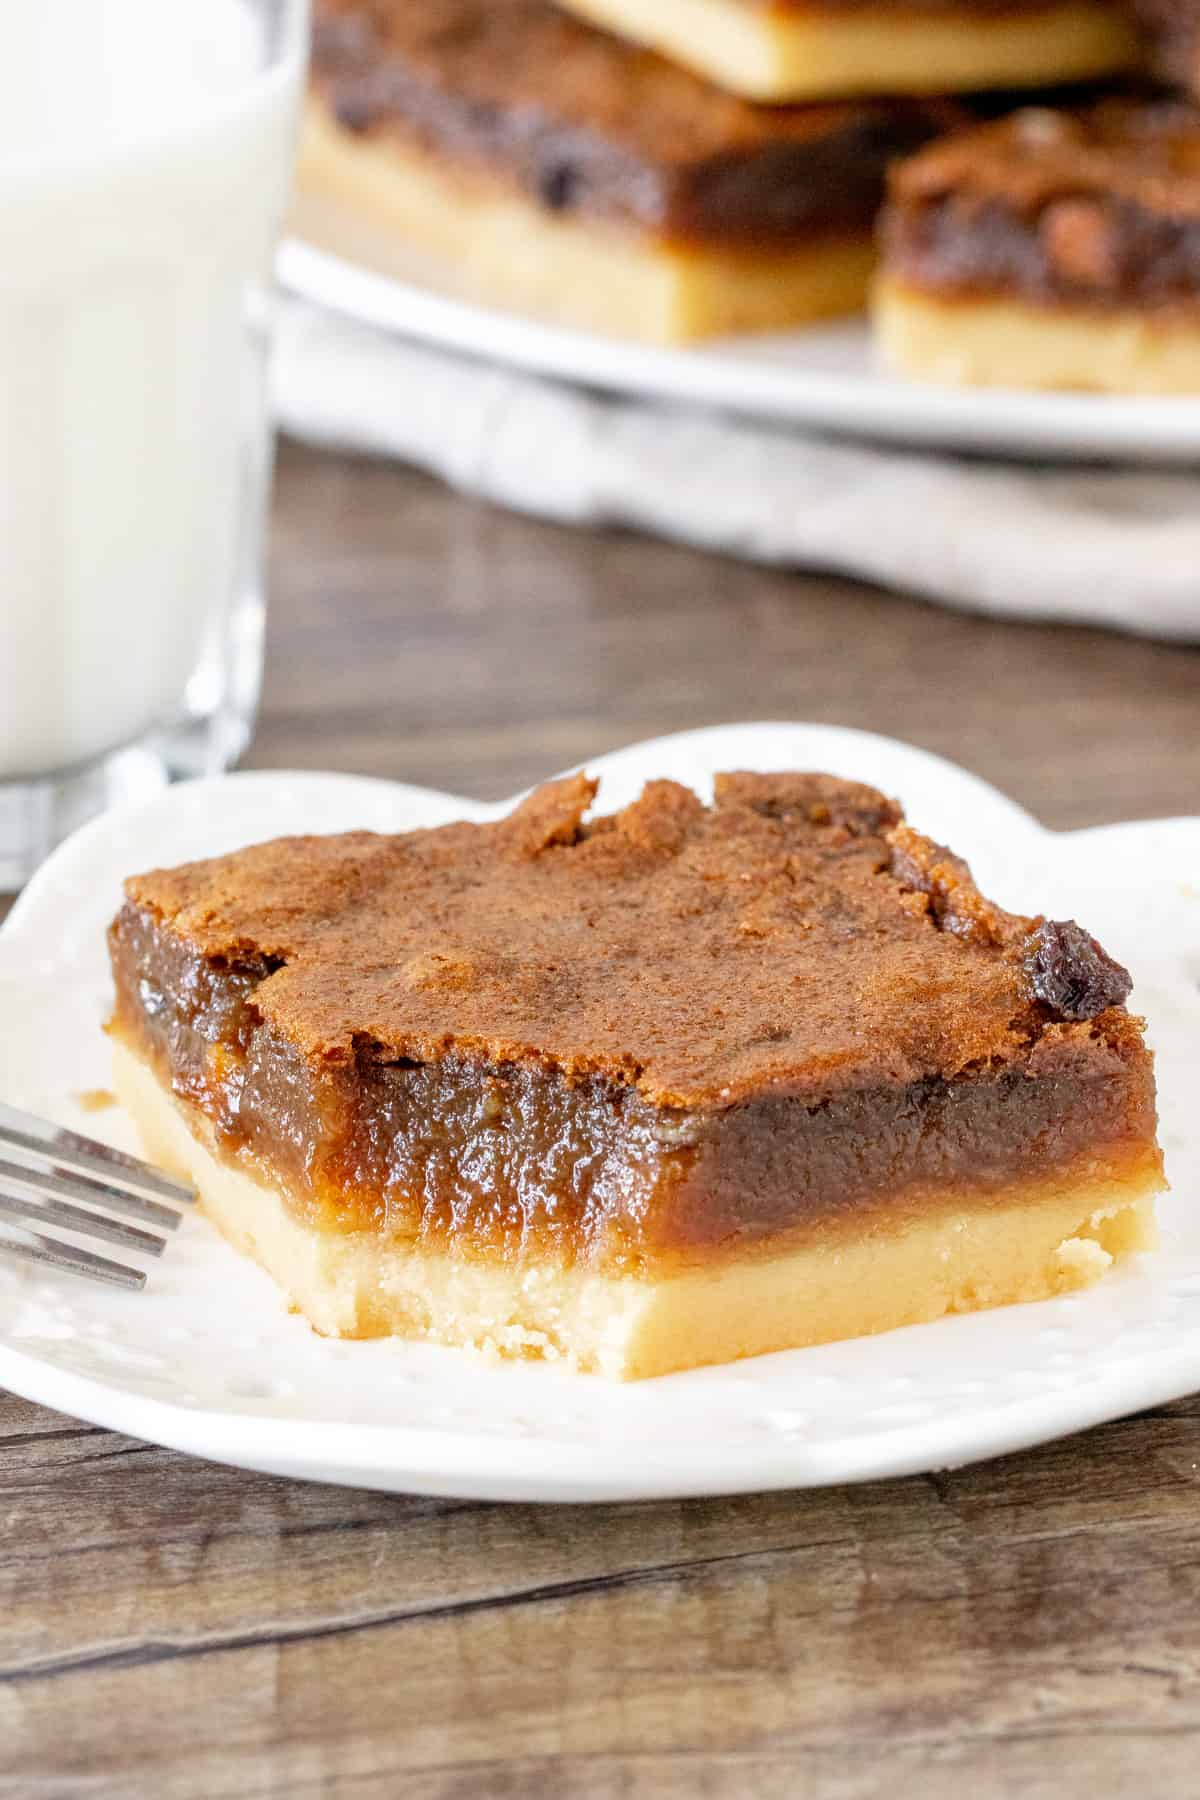 Shortbread bar with brown sugar layer on top with a bite taken out of it.